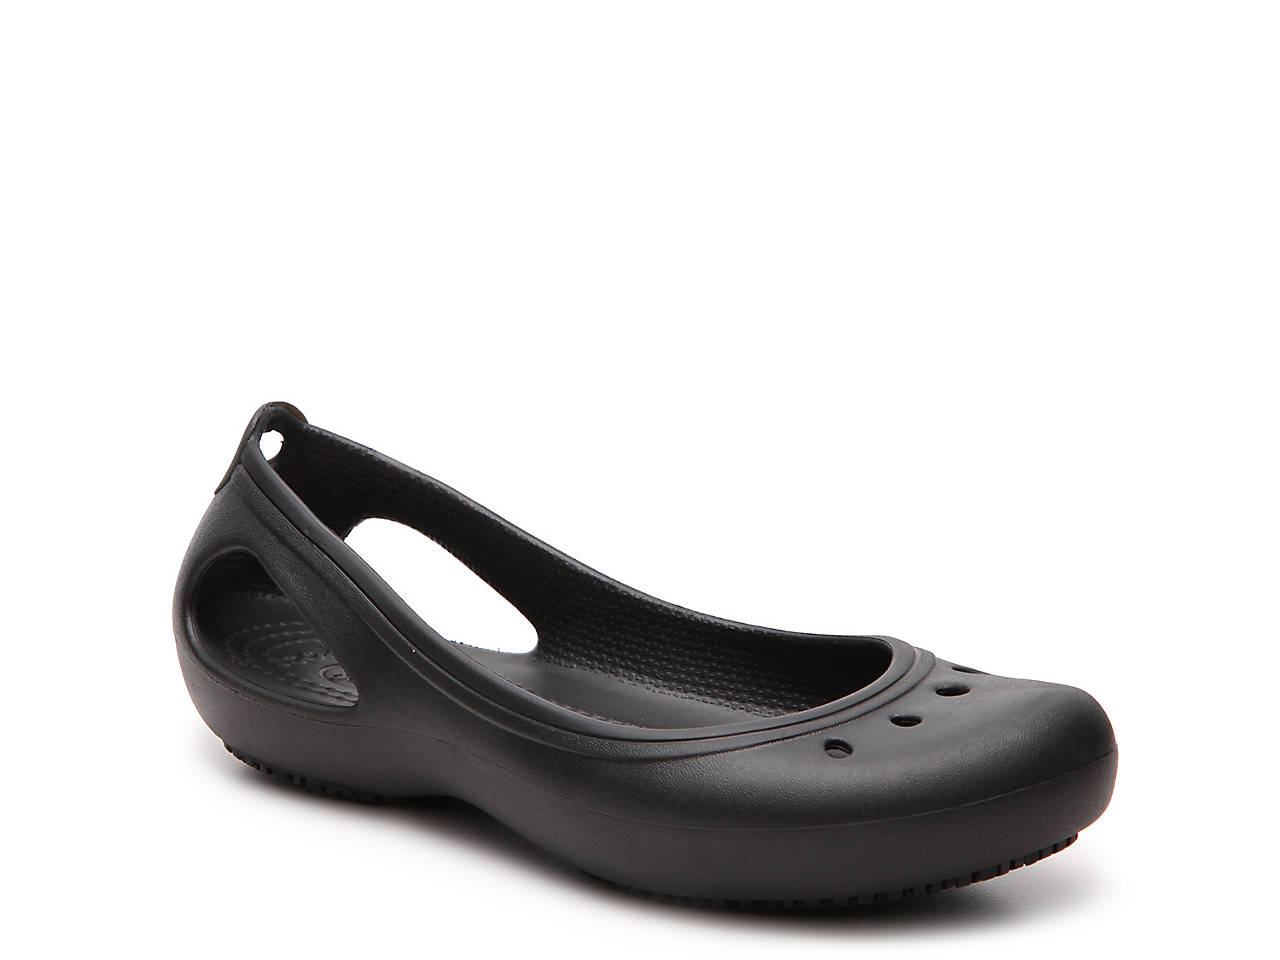 3ba42edfef Crocs Kadee Work Flat Women's Shoes | DSW